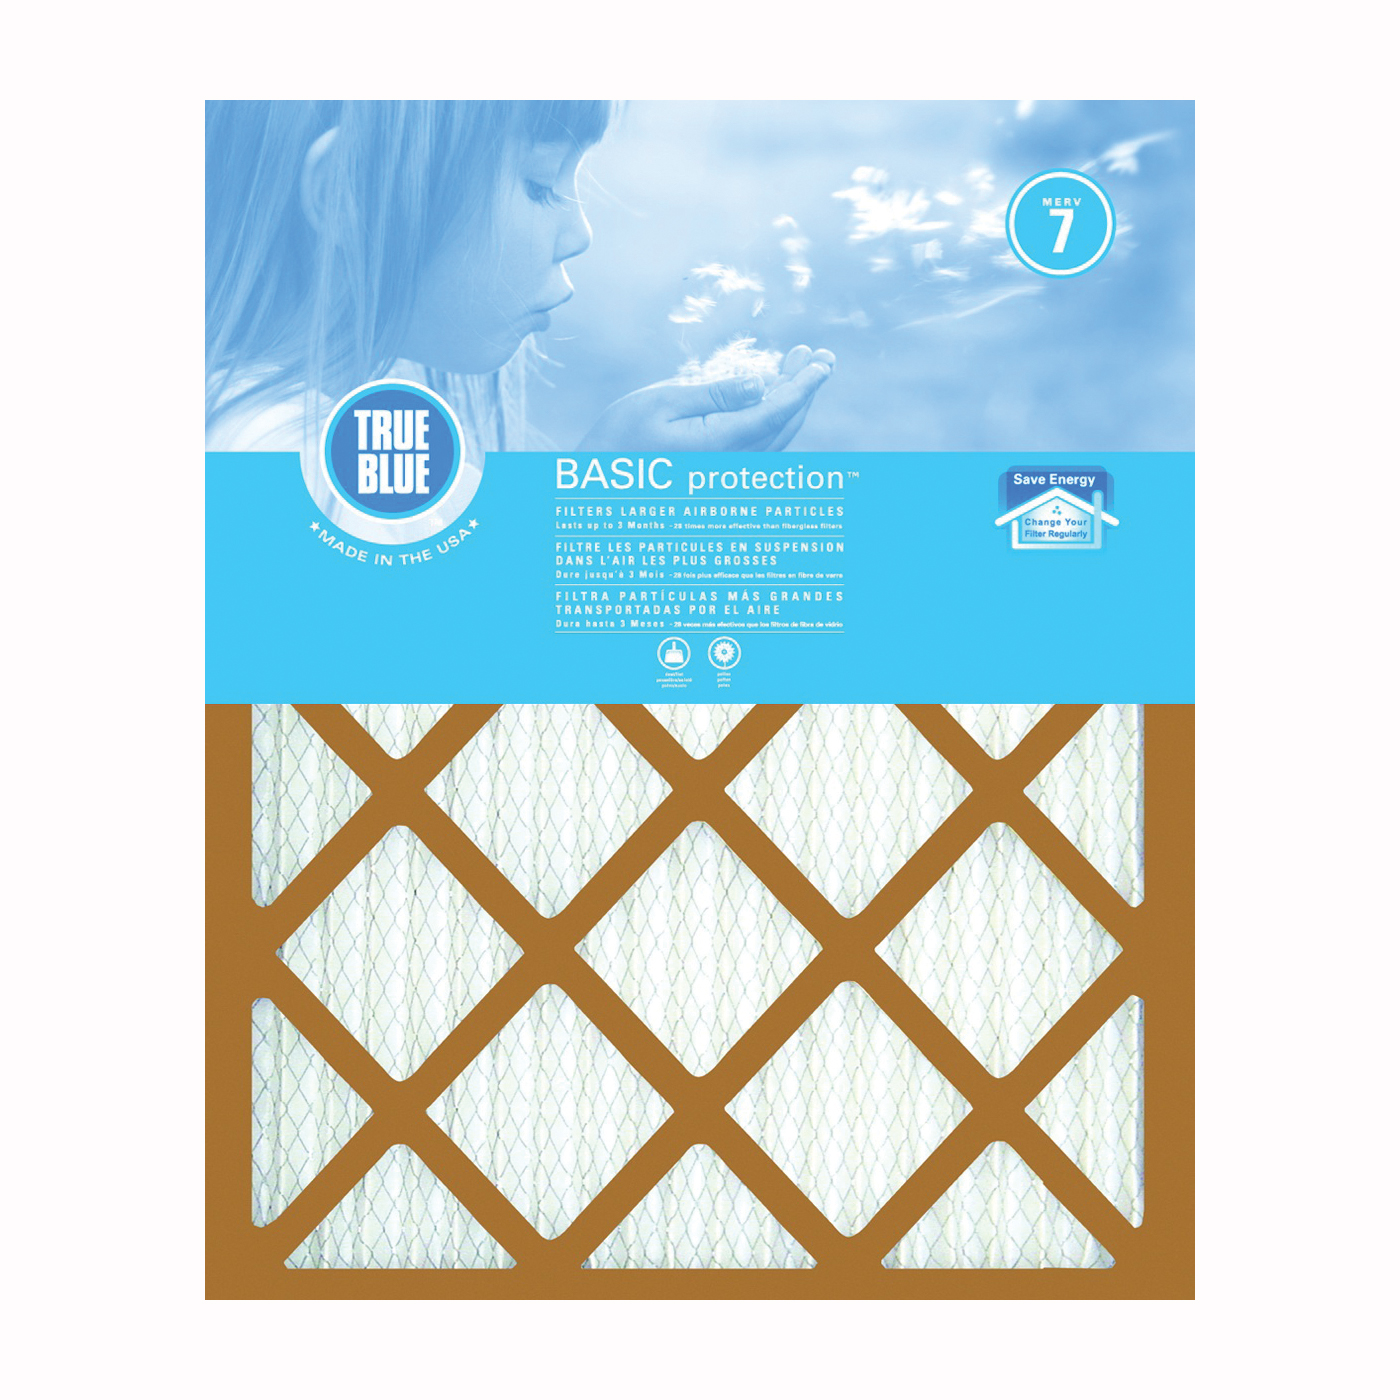 Picture of True Blue 220201 Air Filter, 20 in L, 20 in W, 7 MERV, 53.7 % Filter Efficiency, Synthetic Pleated Filter Media